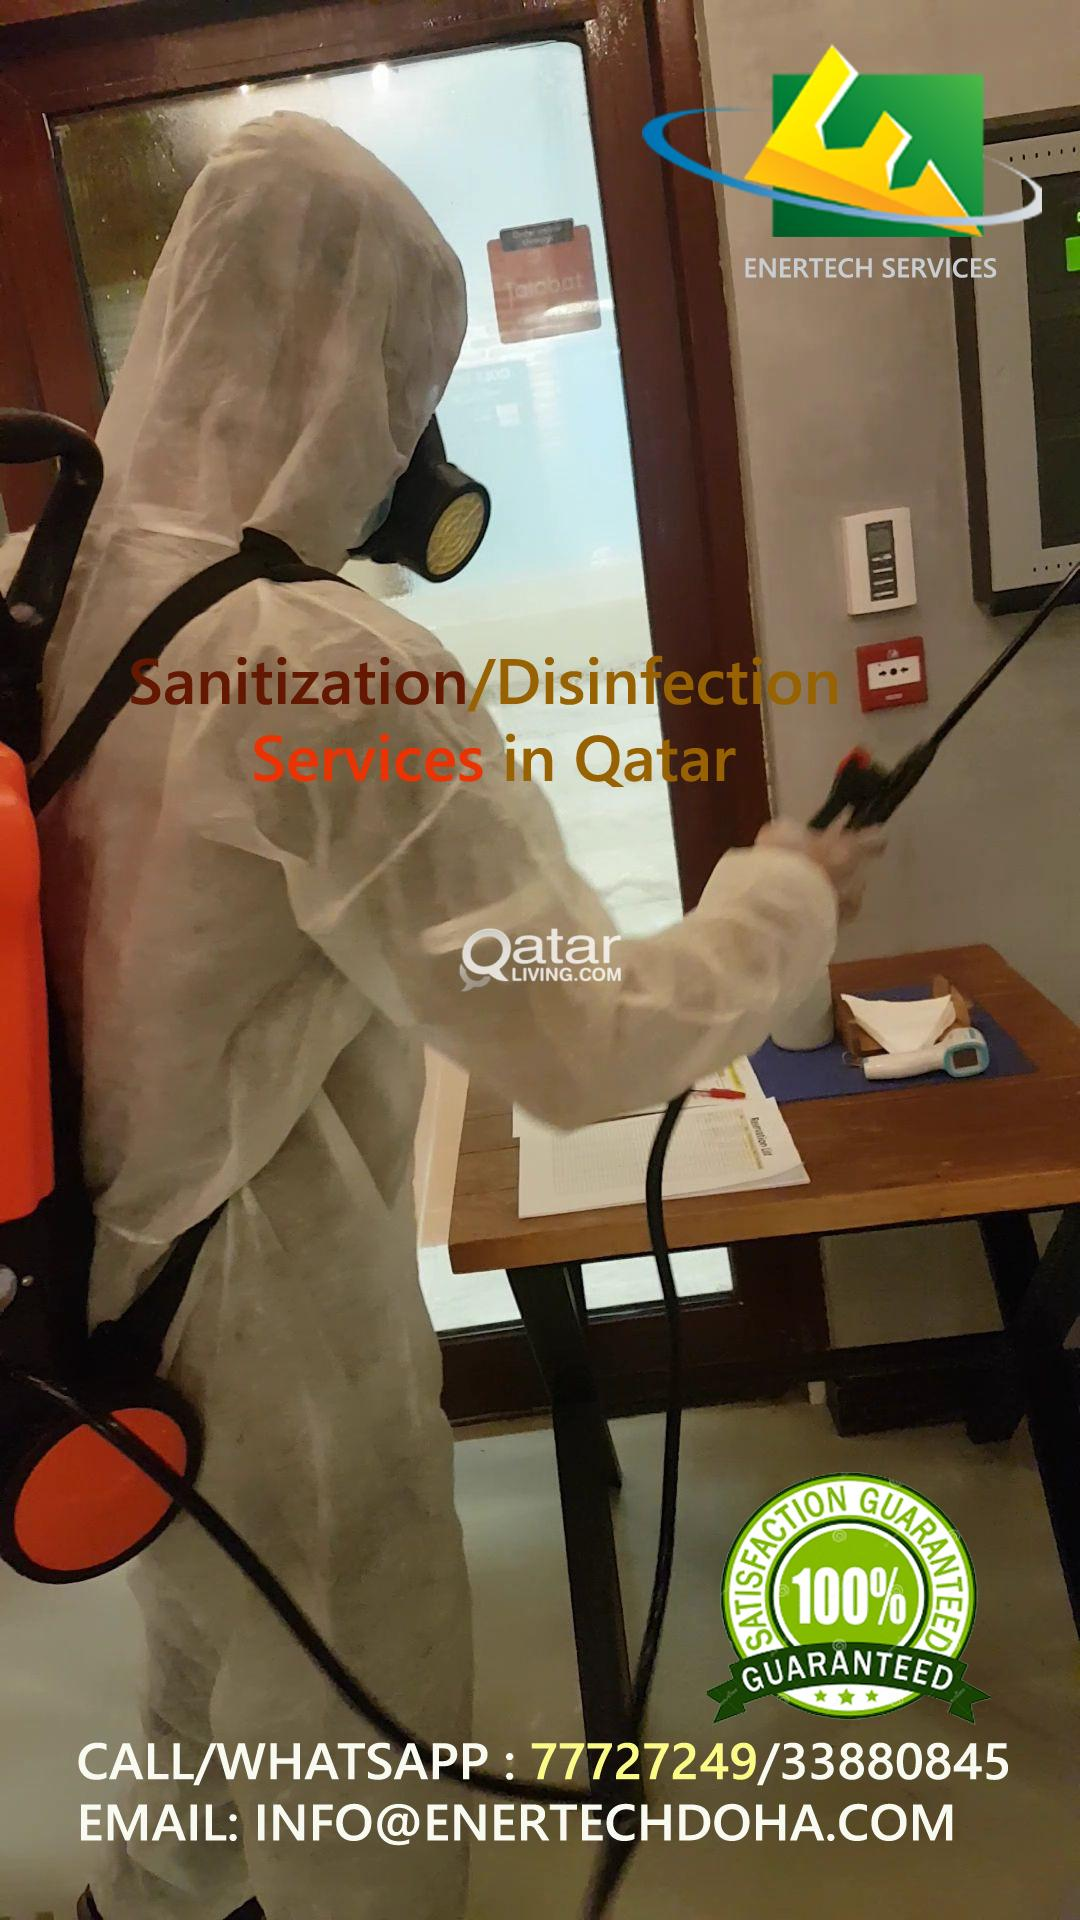 Sanitization/Disinfection Services in Qatar